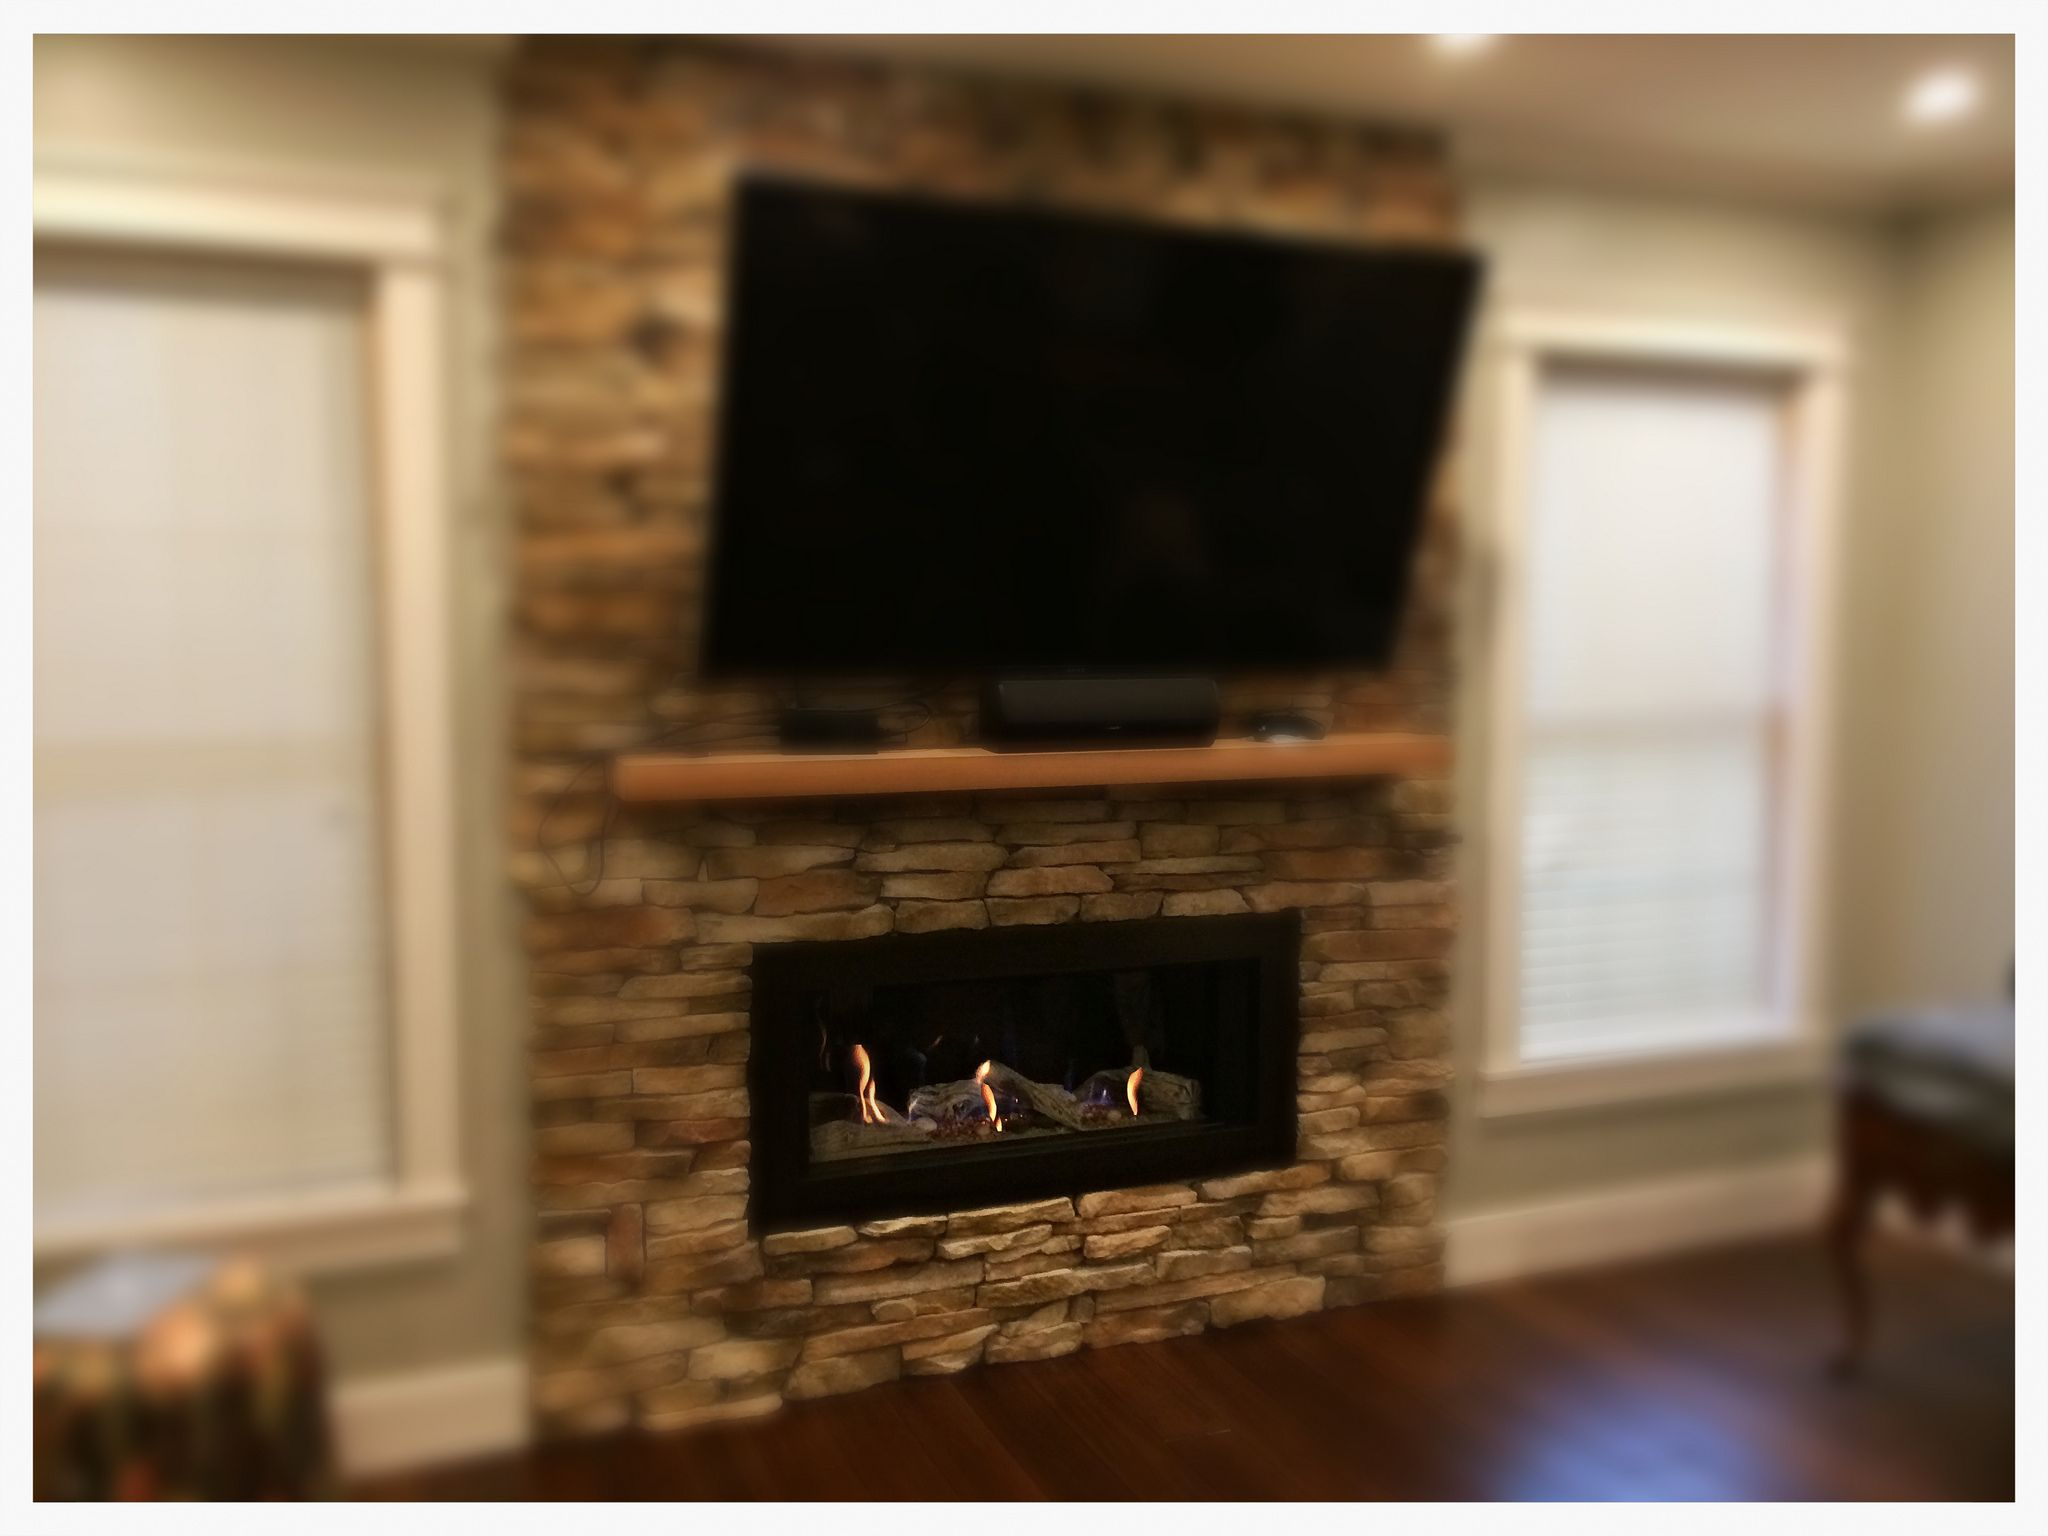 Valor L1 Linear Direct Vent Gas Fireplace Chattanooga Tn